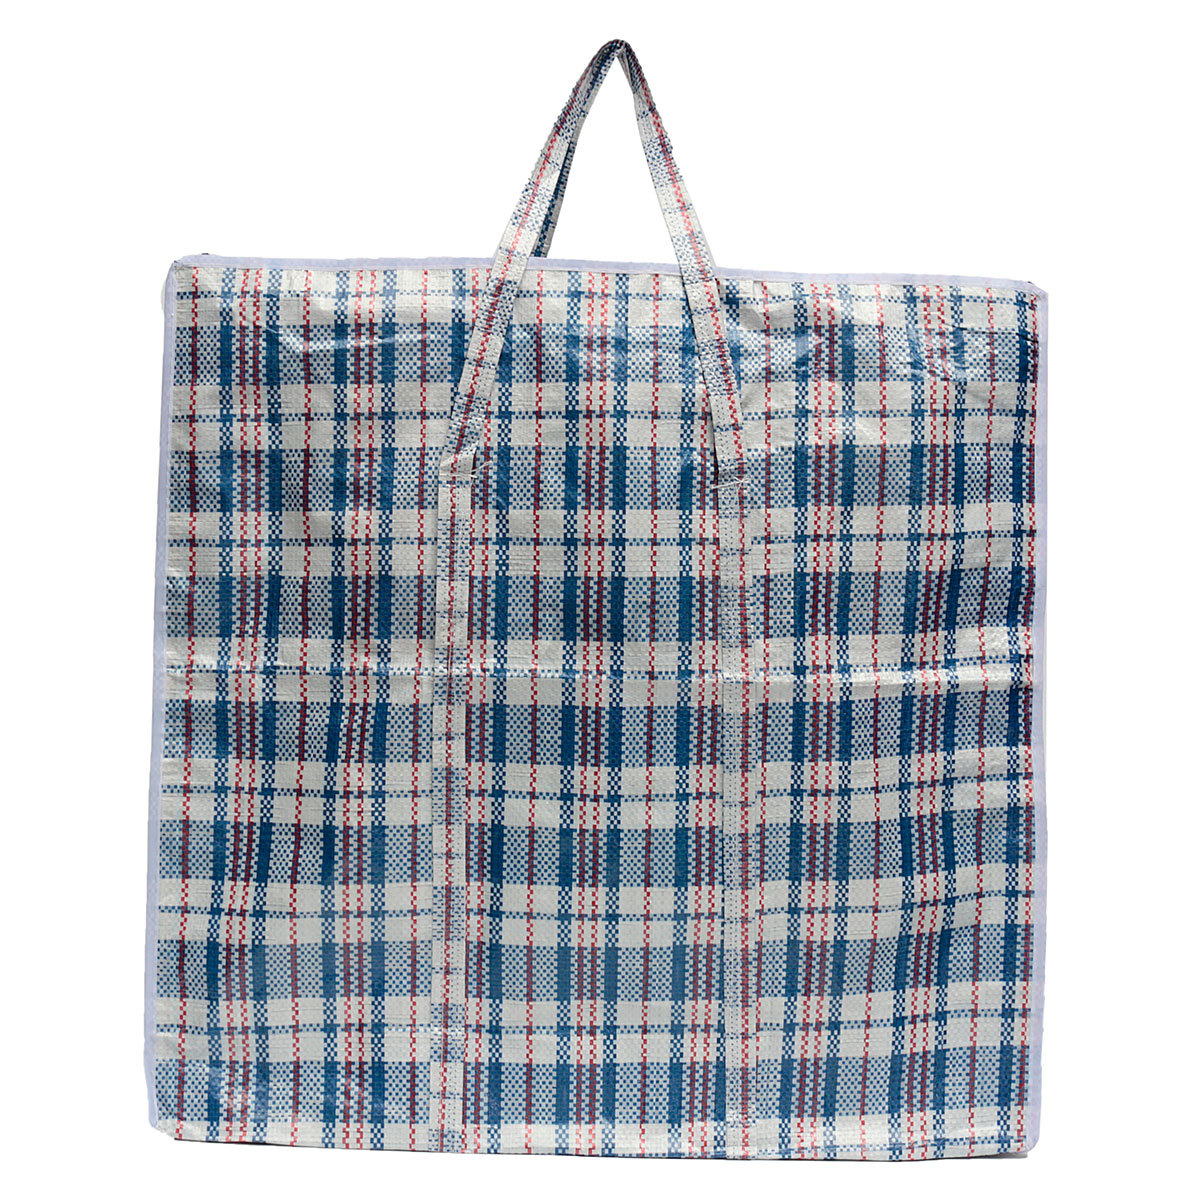 Carry Laundry Bag Reusable Large Zipped Laundry Bag Shopping Carry Storage